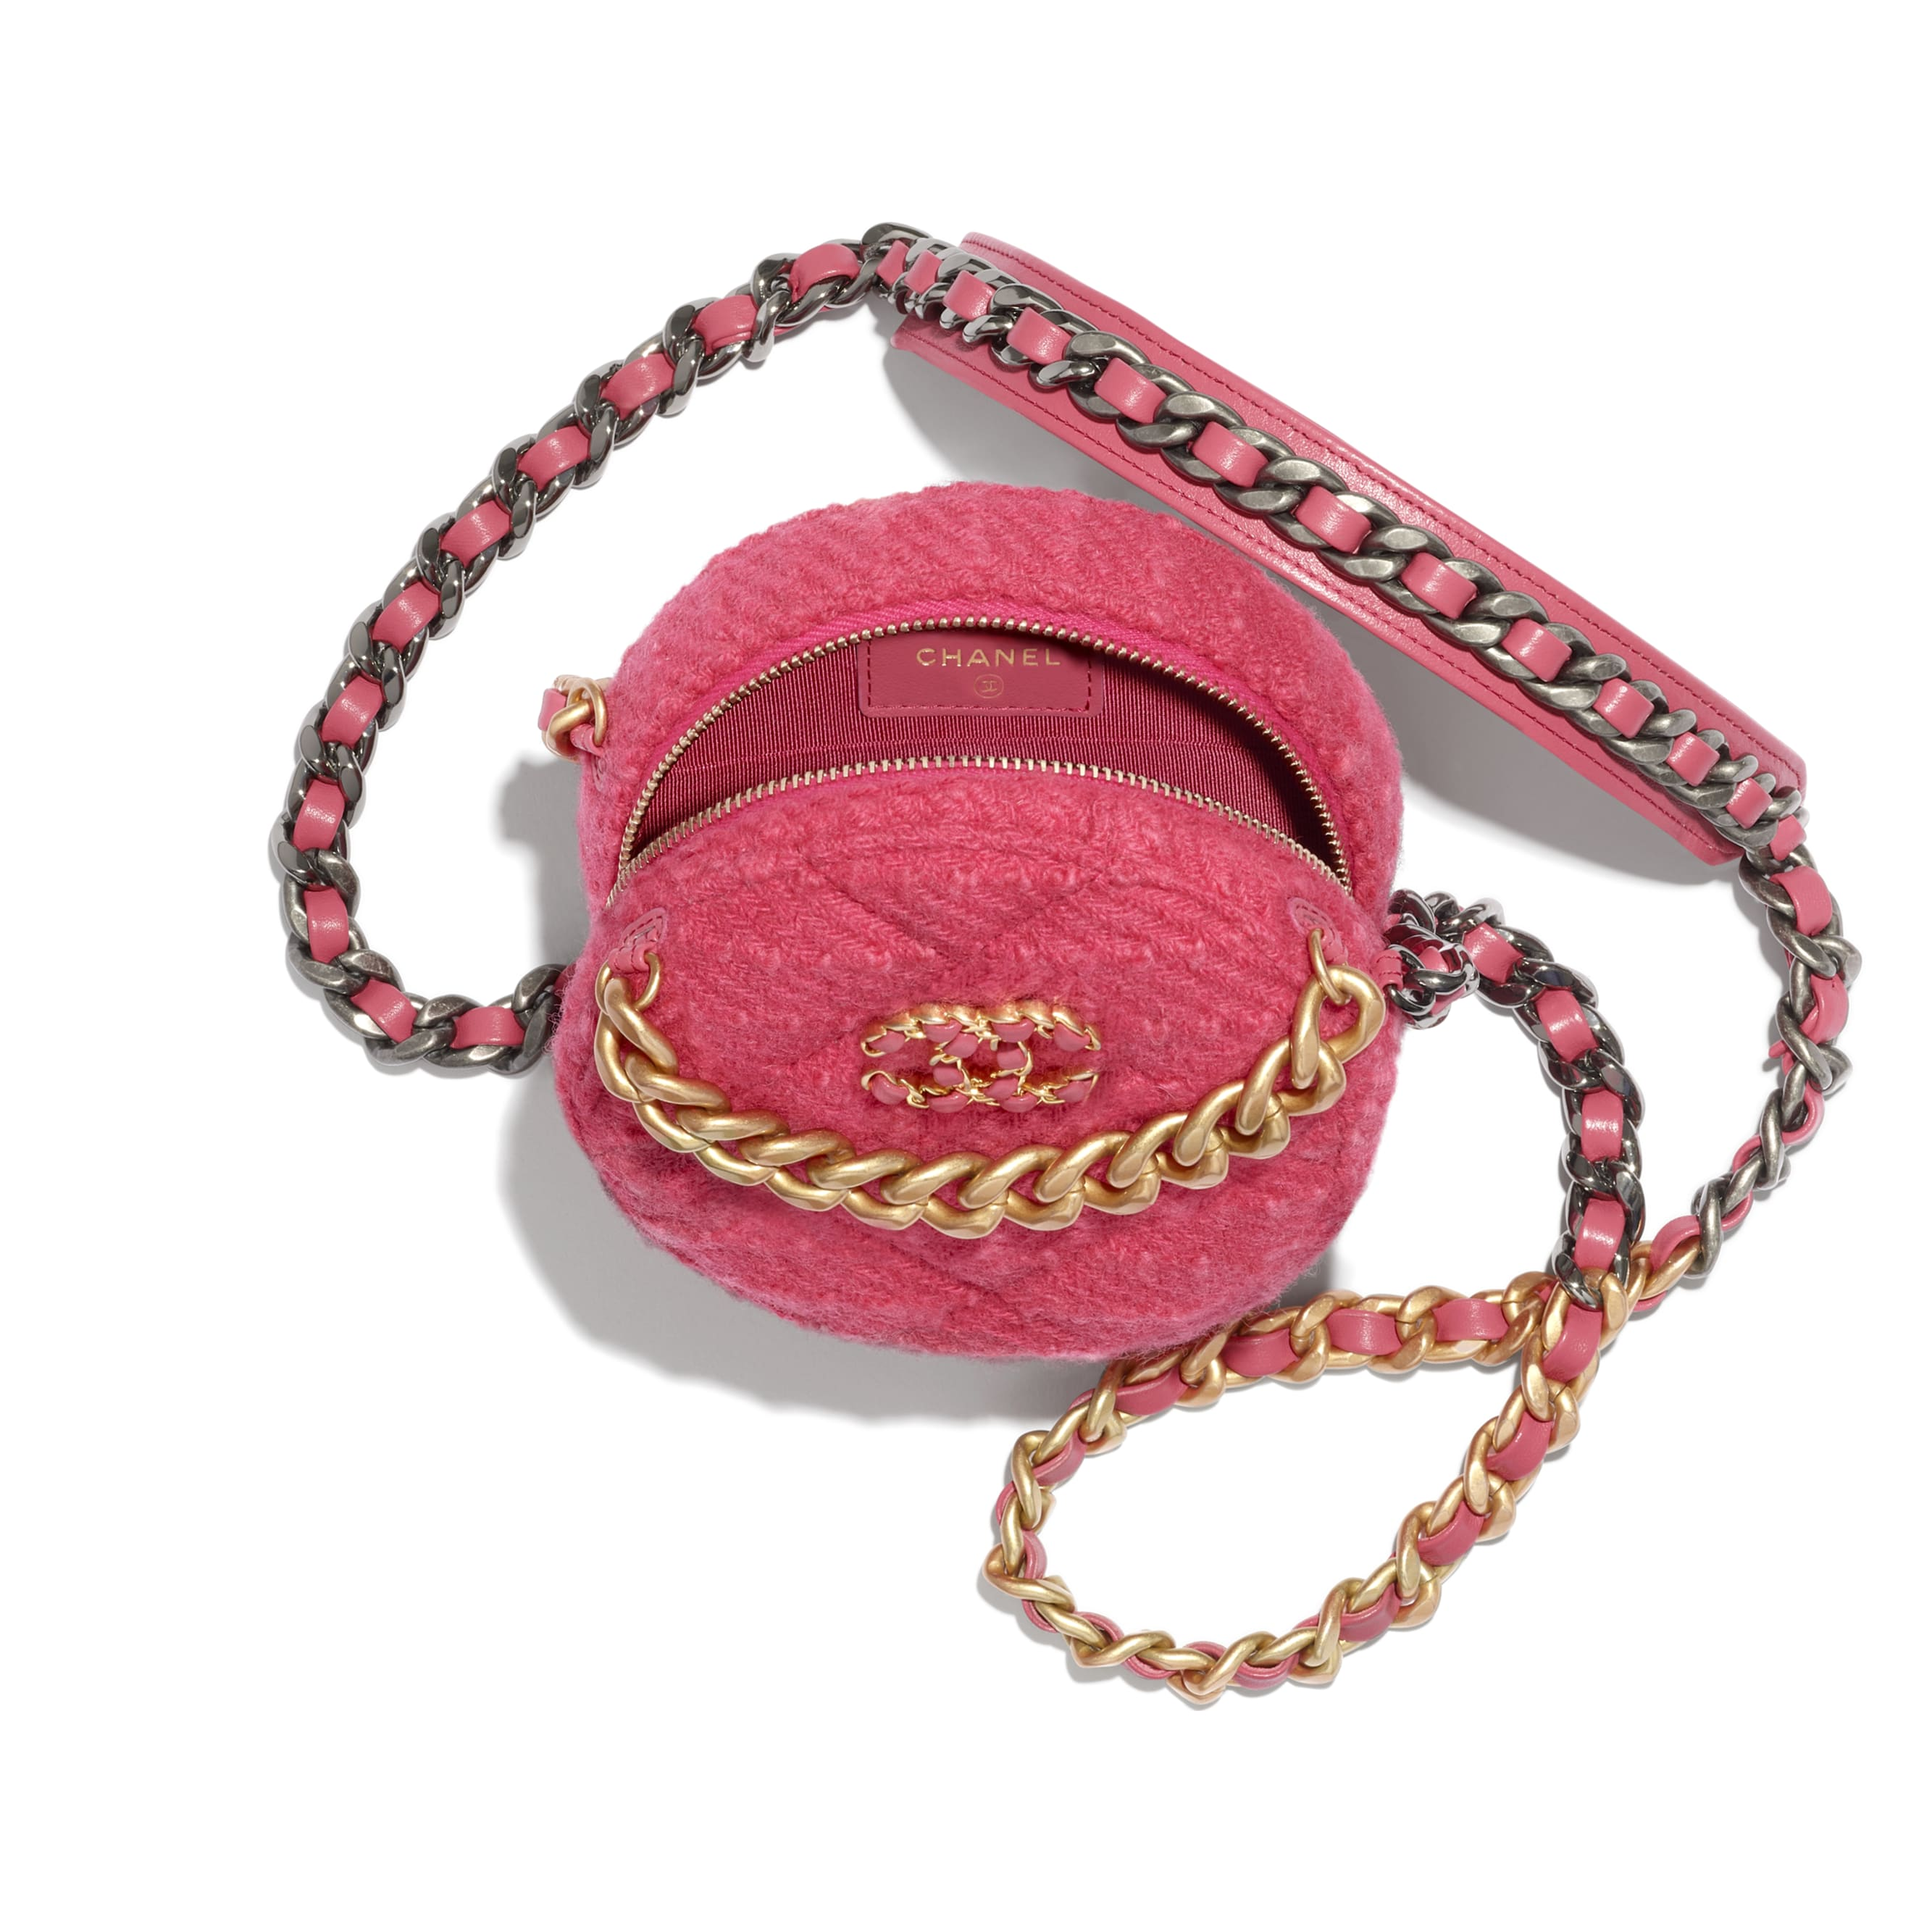 CHANEL 19 Clutch with Chain - Raspberry Pink - Wool Tweed, Gold-Tone, Silver-Tone & Ruthenium-Finish Metal - CHANEL - Alternative view - see standard sized version